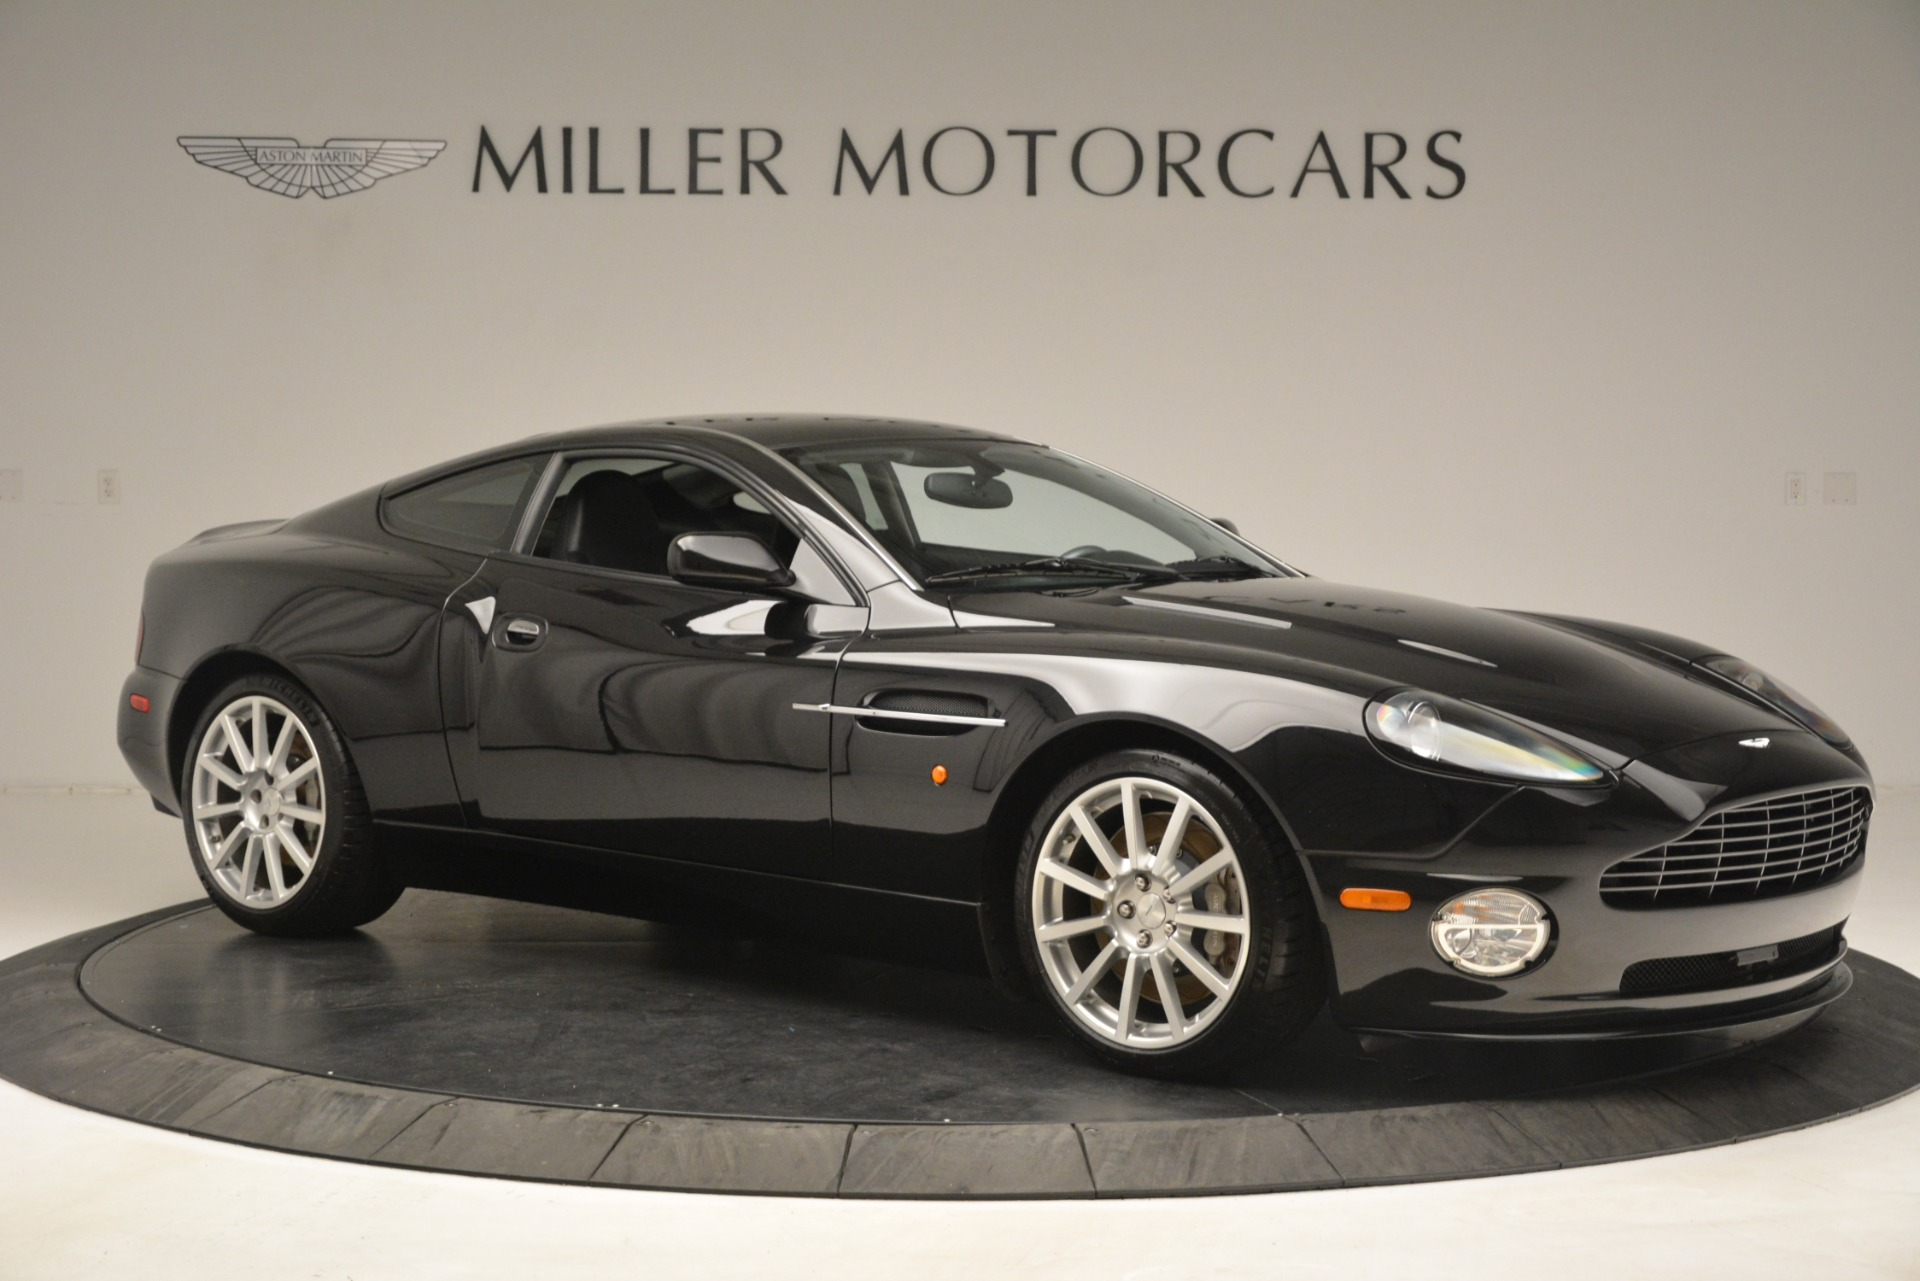 Used 2005 Aston Martin V12 Vanquish S Coupe For Sale In Westport, CT 3218_p10